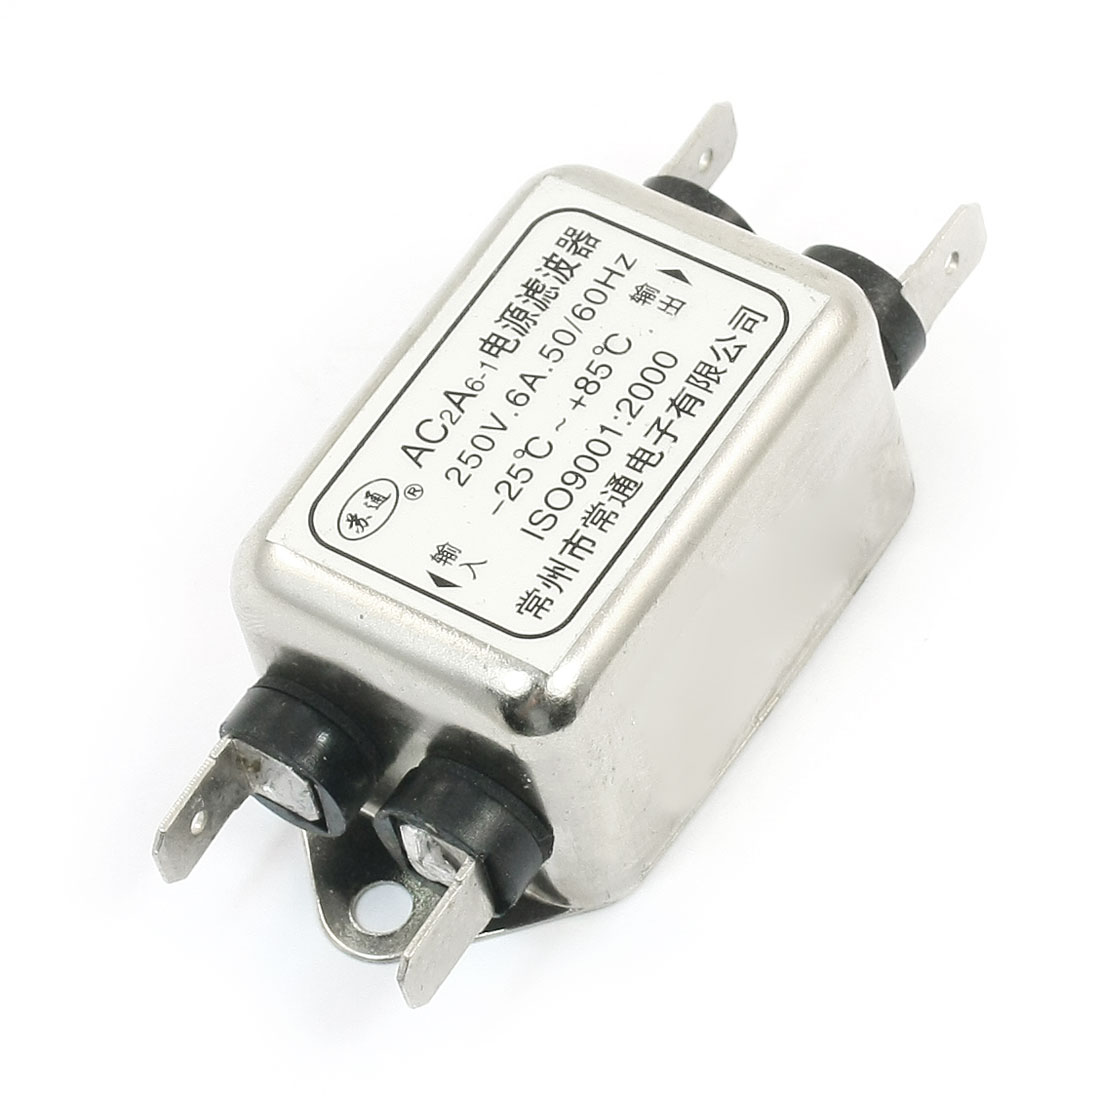 AC250V 6A 4-Pin Solder Lug Terminal Single Phase Metal Case General Purpose Noise Suppressor Power Line EMI Filter